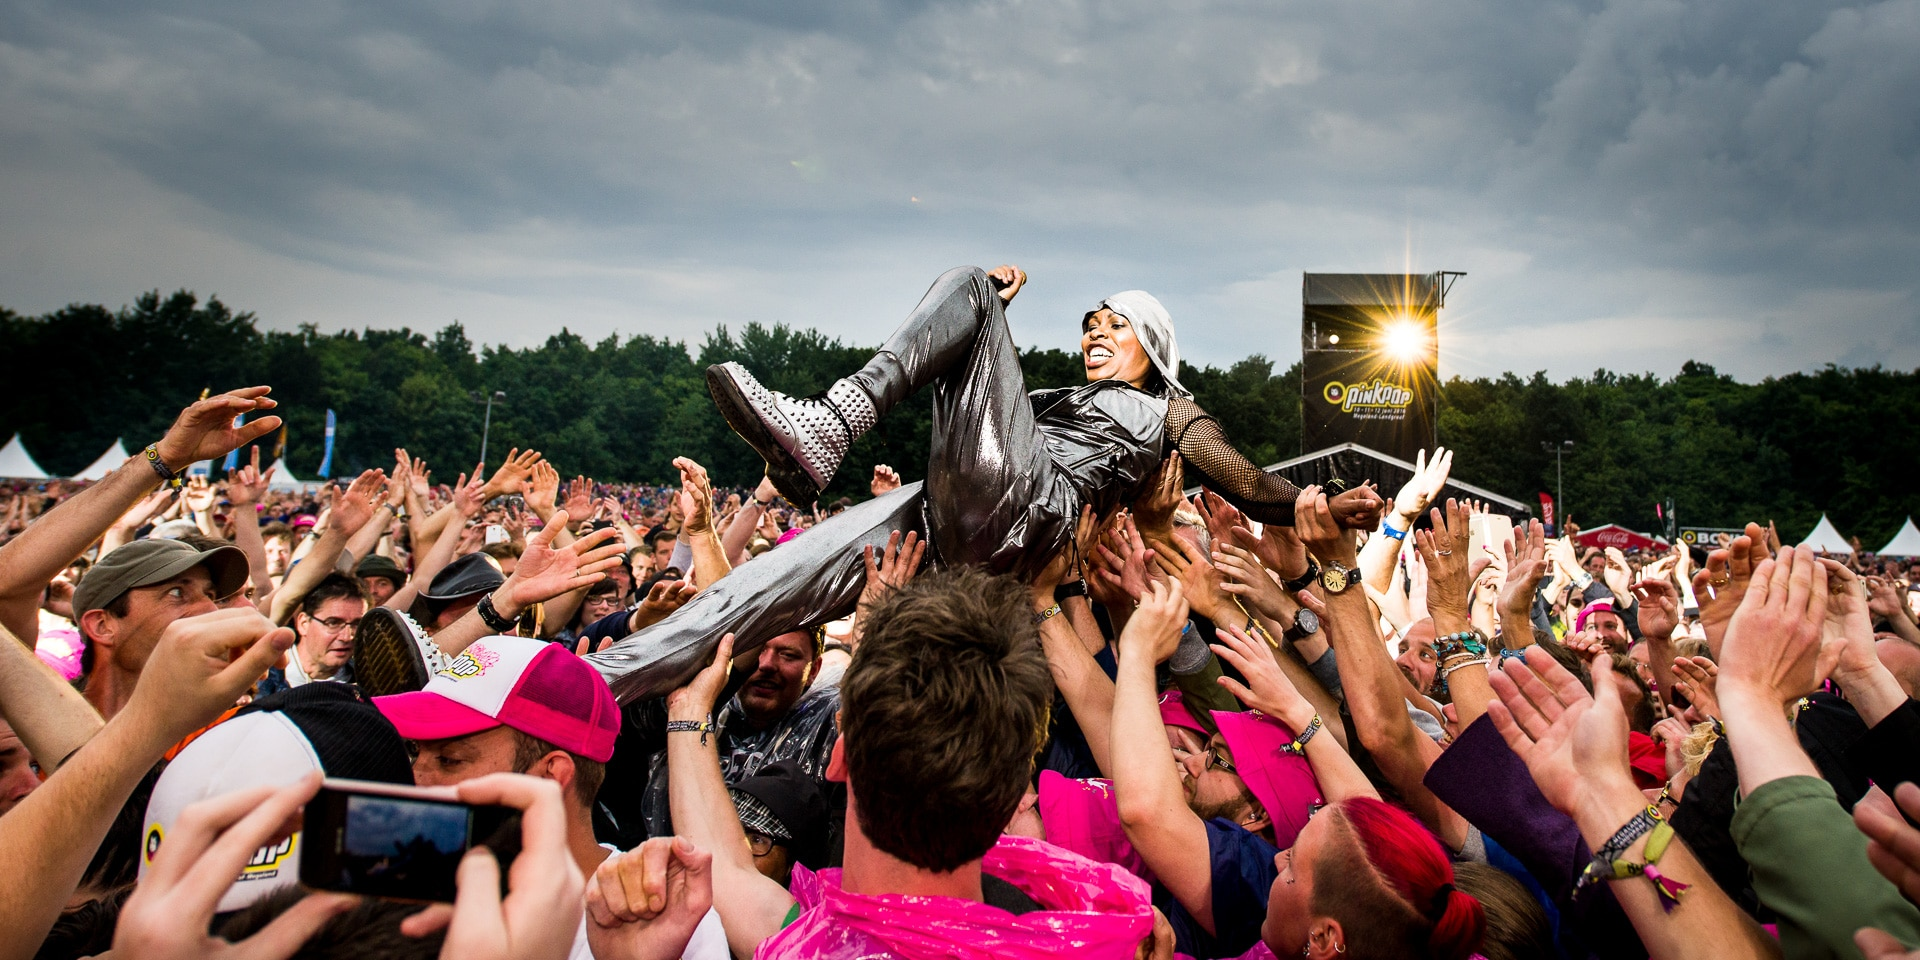 Skunk Anansie op Pinkpop 2016 - ©Jelmer de Haas - All Rights Reserved